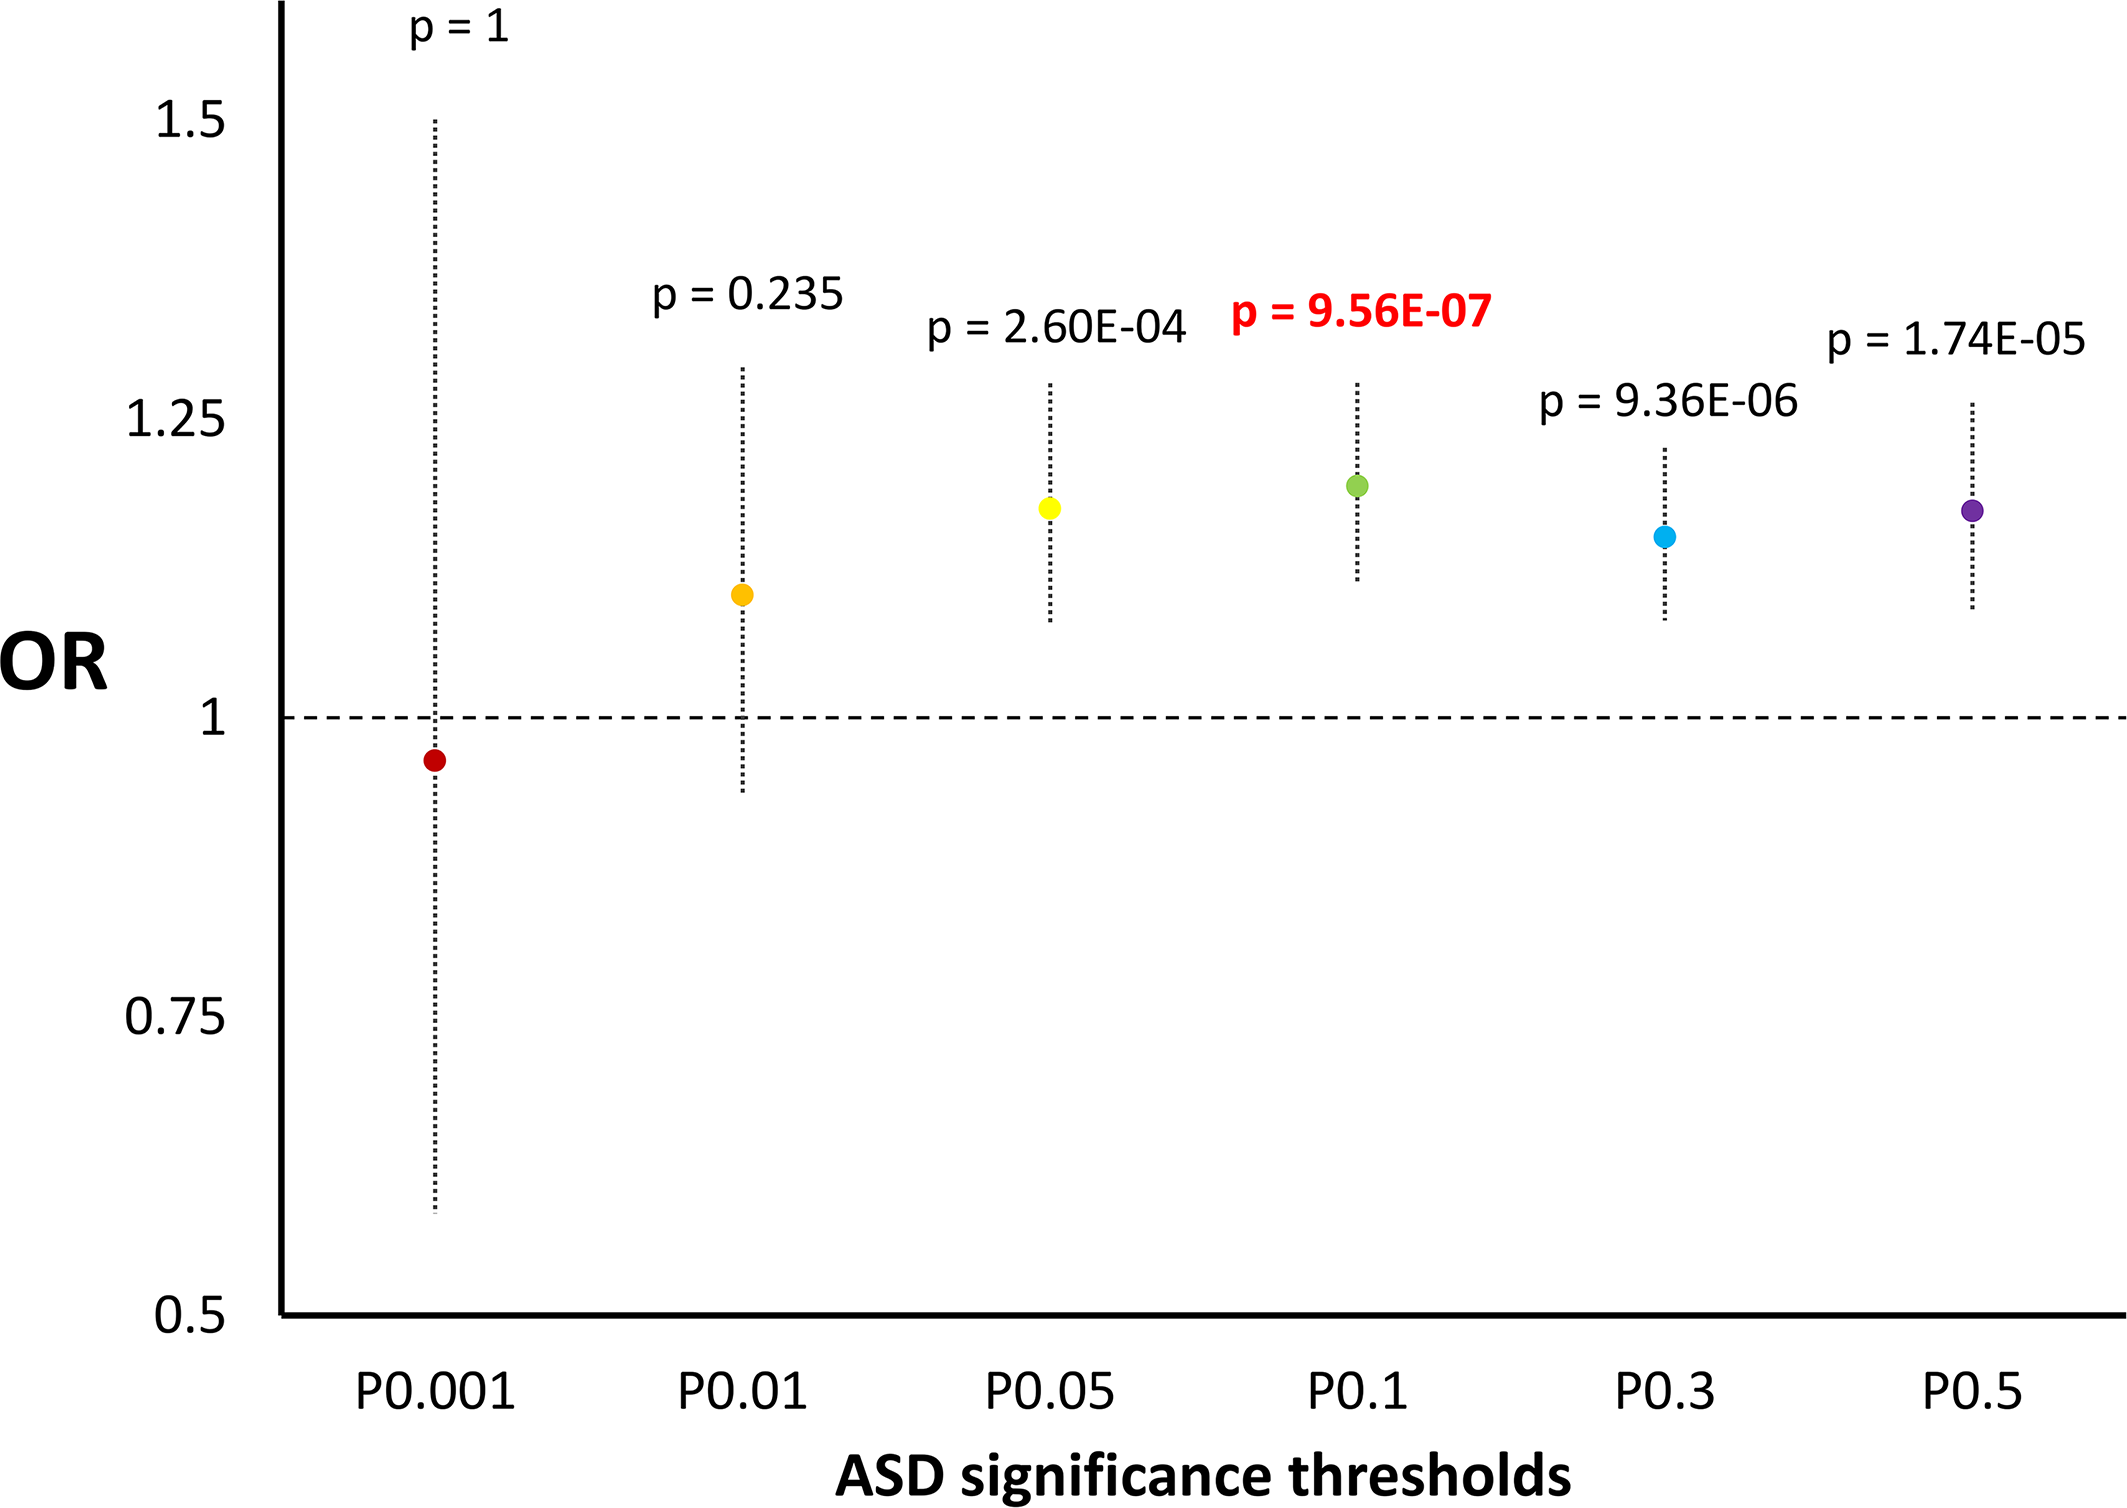 Enrichments for scores related to incomplete selection in ASD GWAS considering different thresholds.